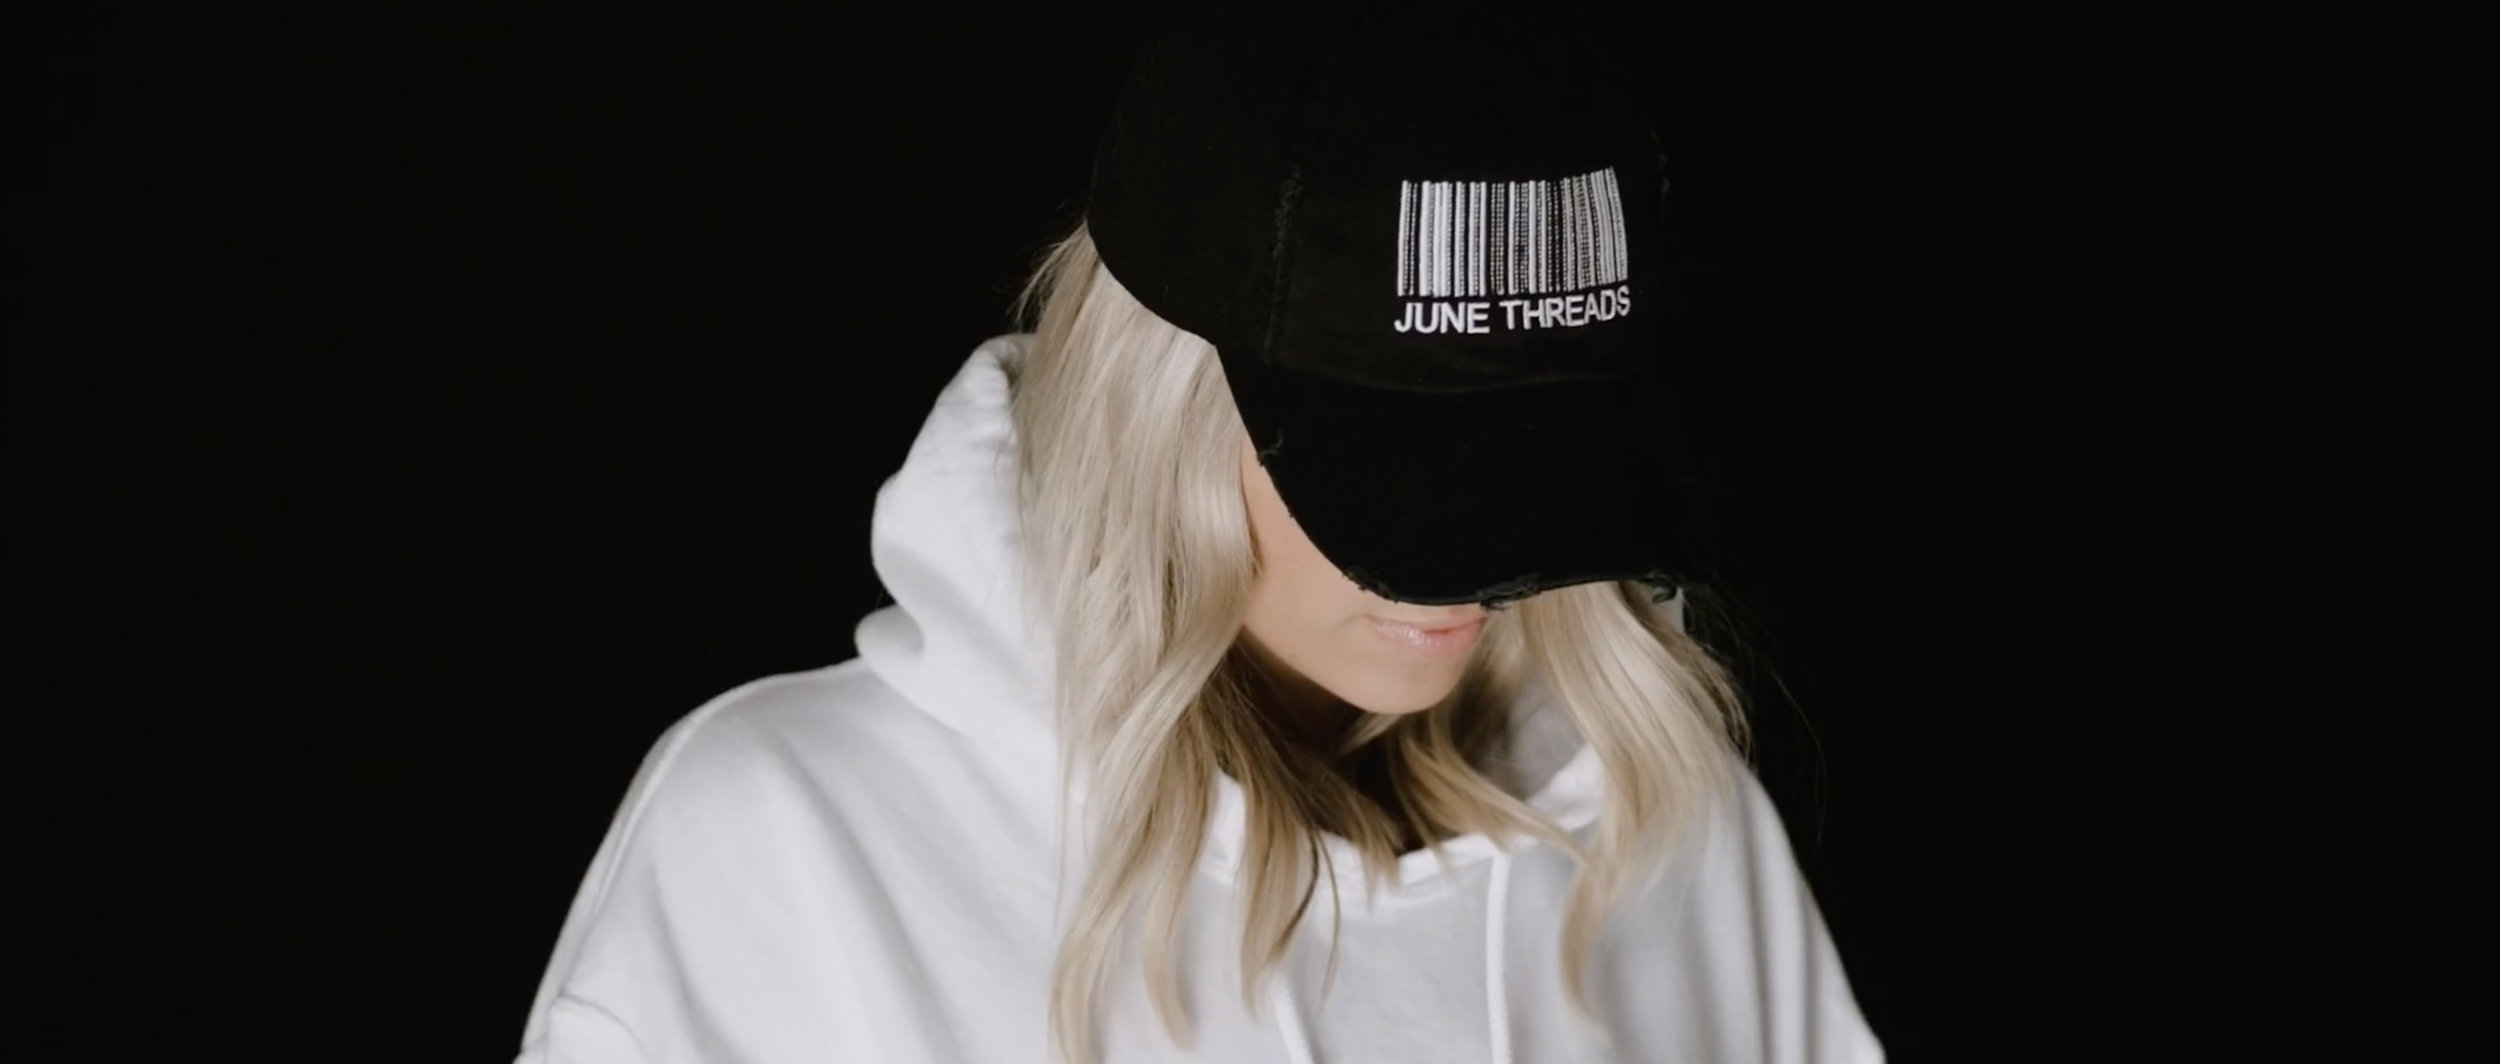 June Threads - 60 second brand identity video for Denver based streetwear startup produced concurrently with a studio photoshoot for June Threads' Spring 2019 line.Video Director: Ben GillespieProduction: Luca Damian, Nathan RaczynskiPhotography: Bailey MicletteLine Producer: Jackie Joyner